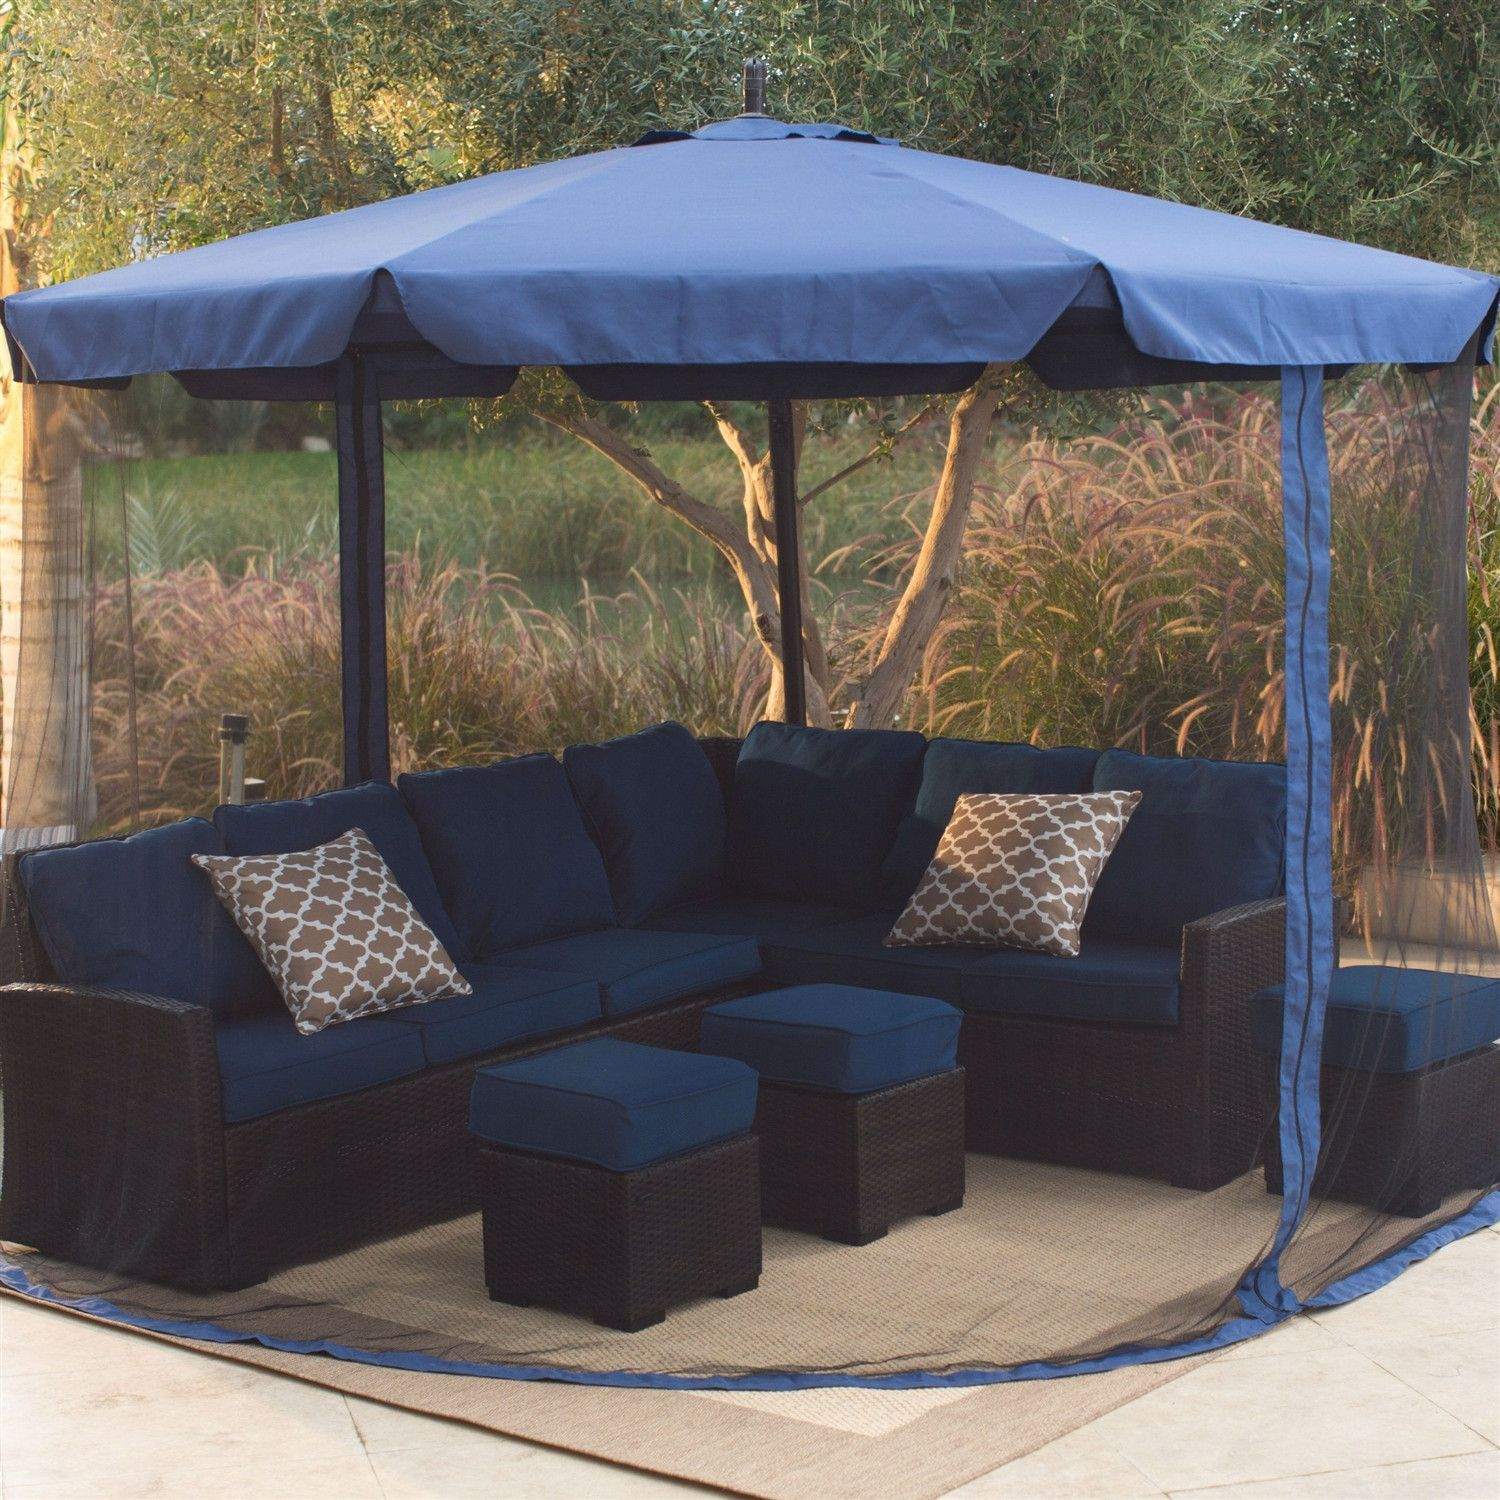 11-Ft Cantilever Crank Lift Patio Umbrella in Blue with ...